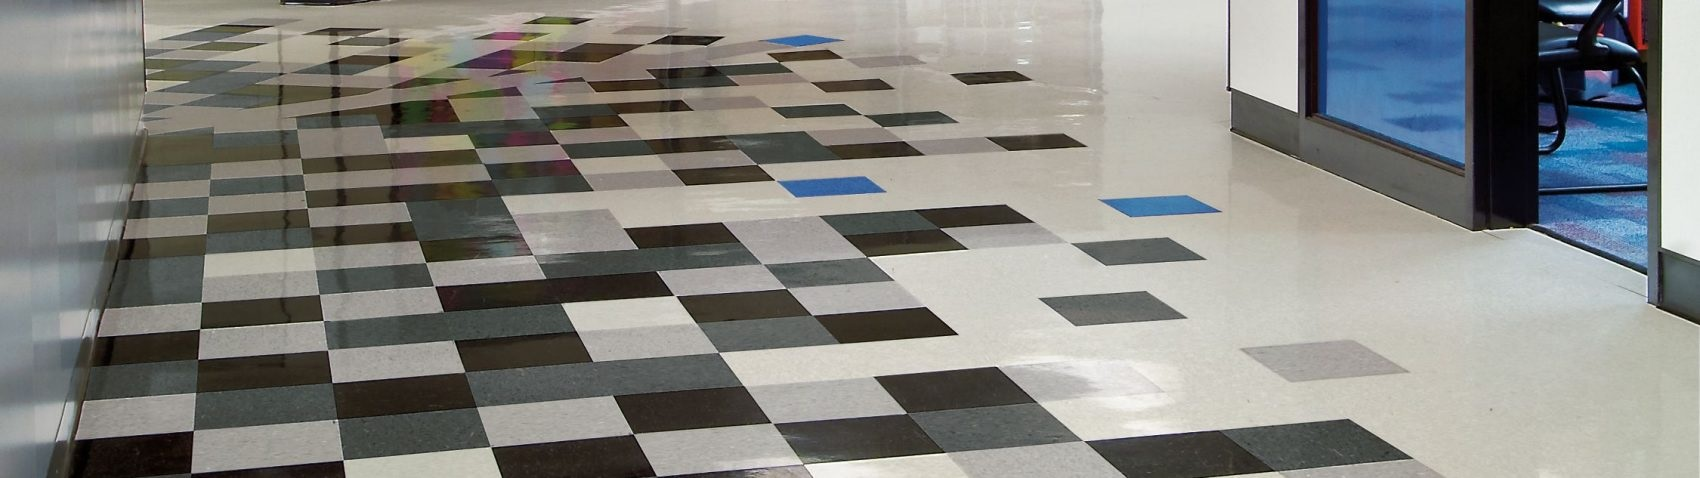 Commercial tile flooring